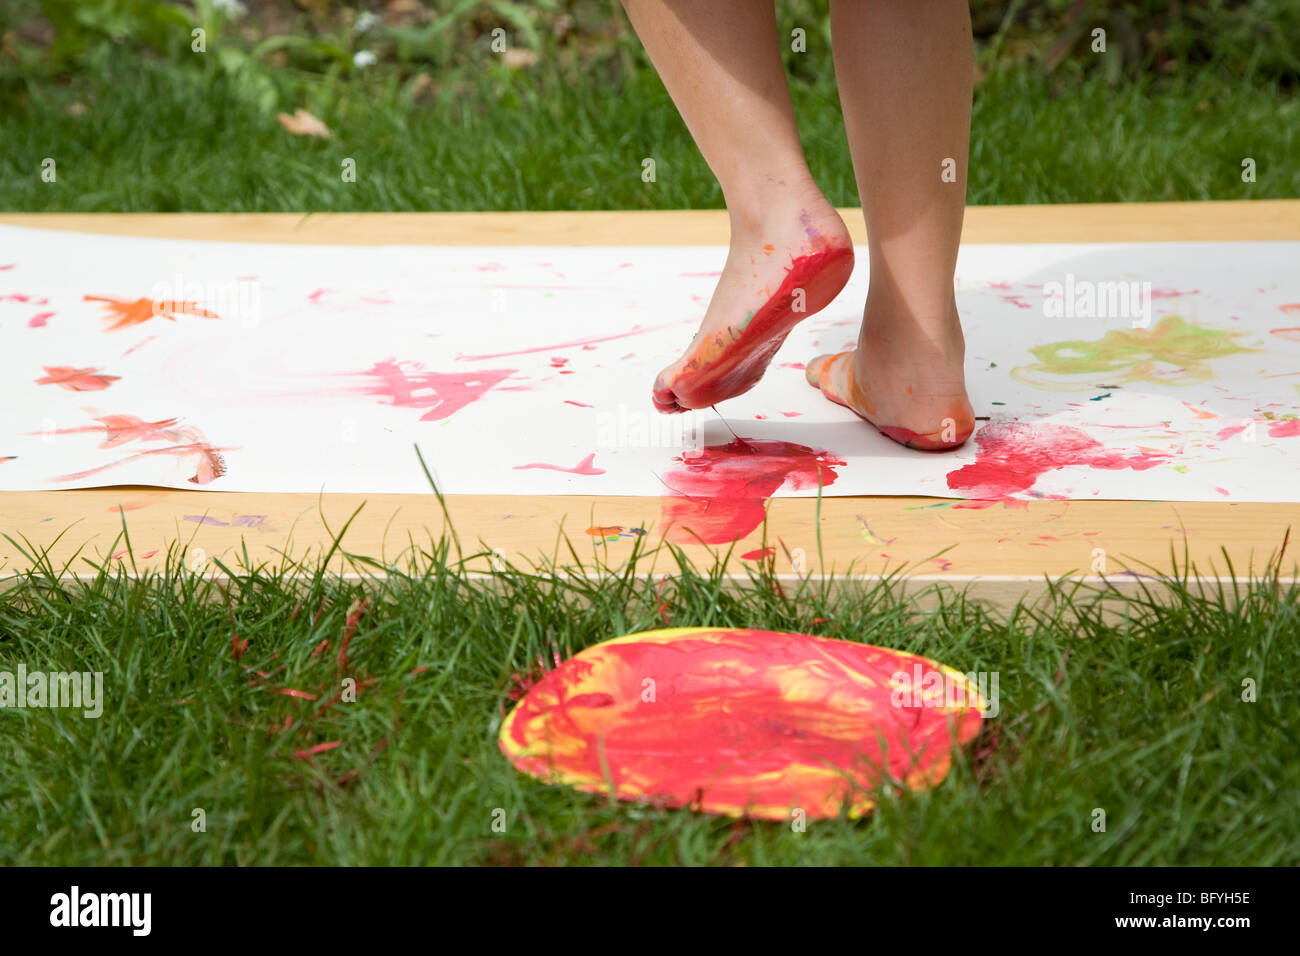 Child feet painting in the garden - Stock Image